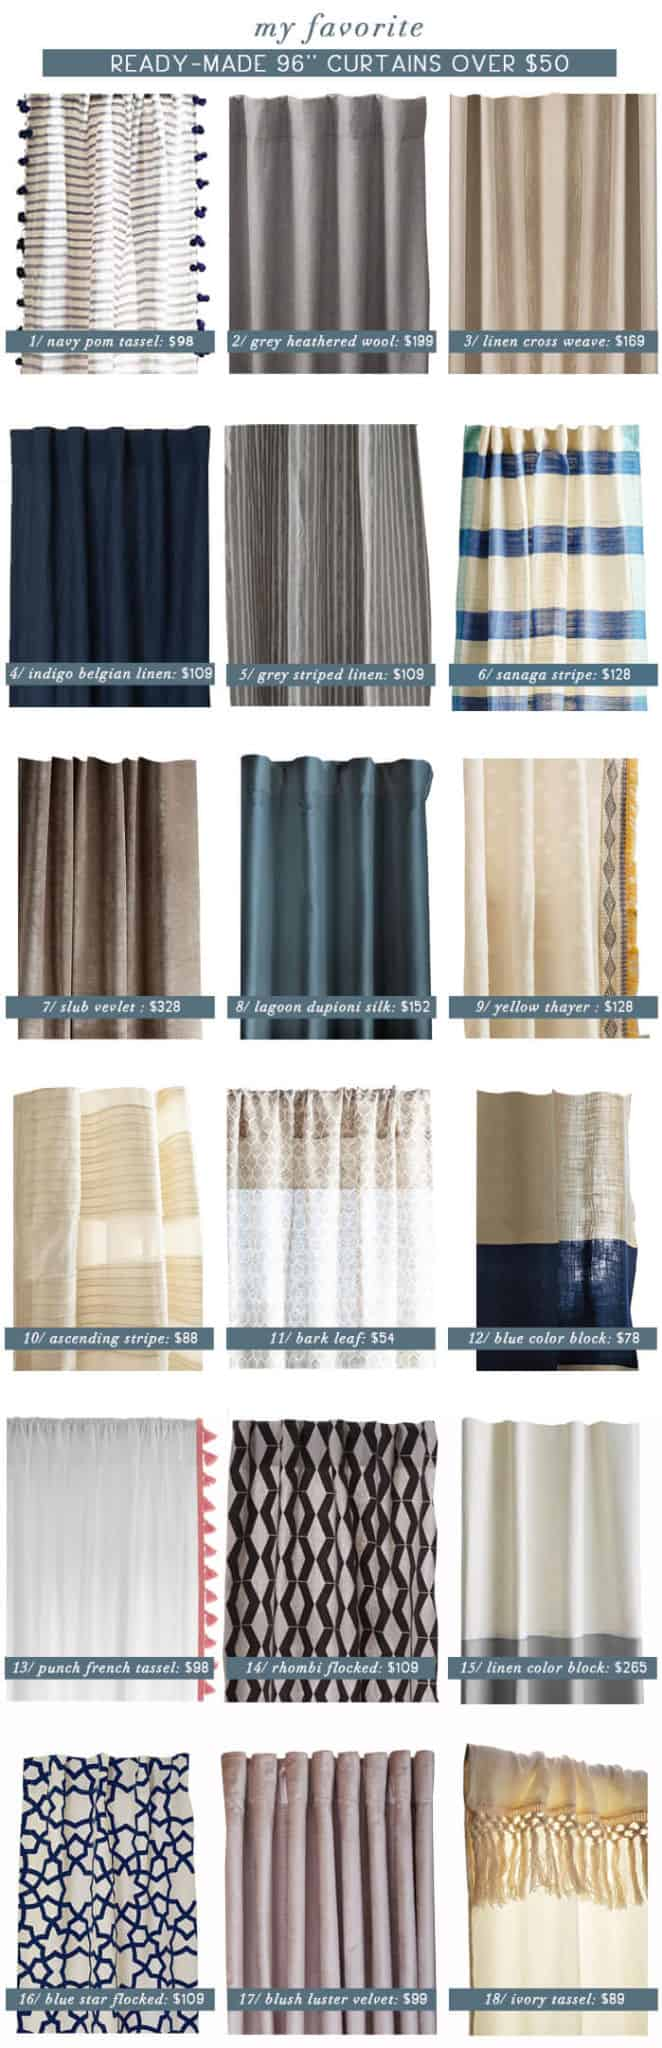 Emily_Henderson_Best_Curtain_Panels_Over_50_Roundup